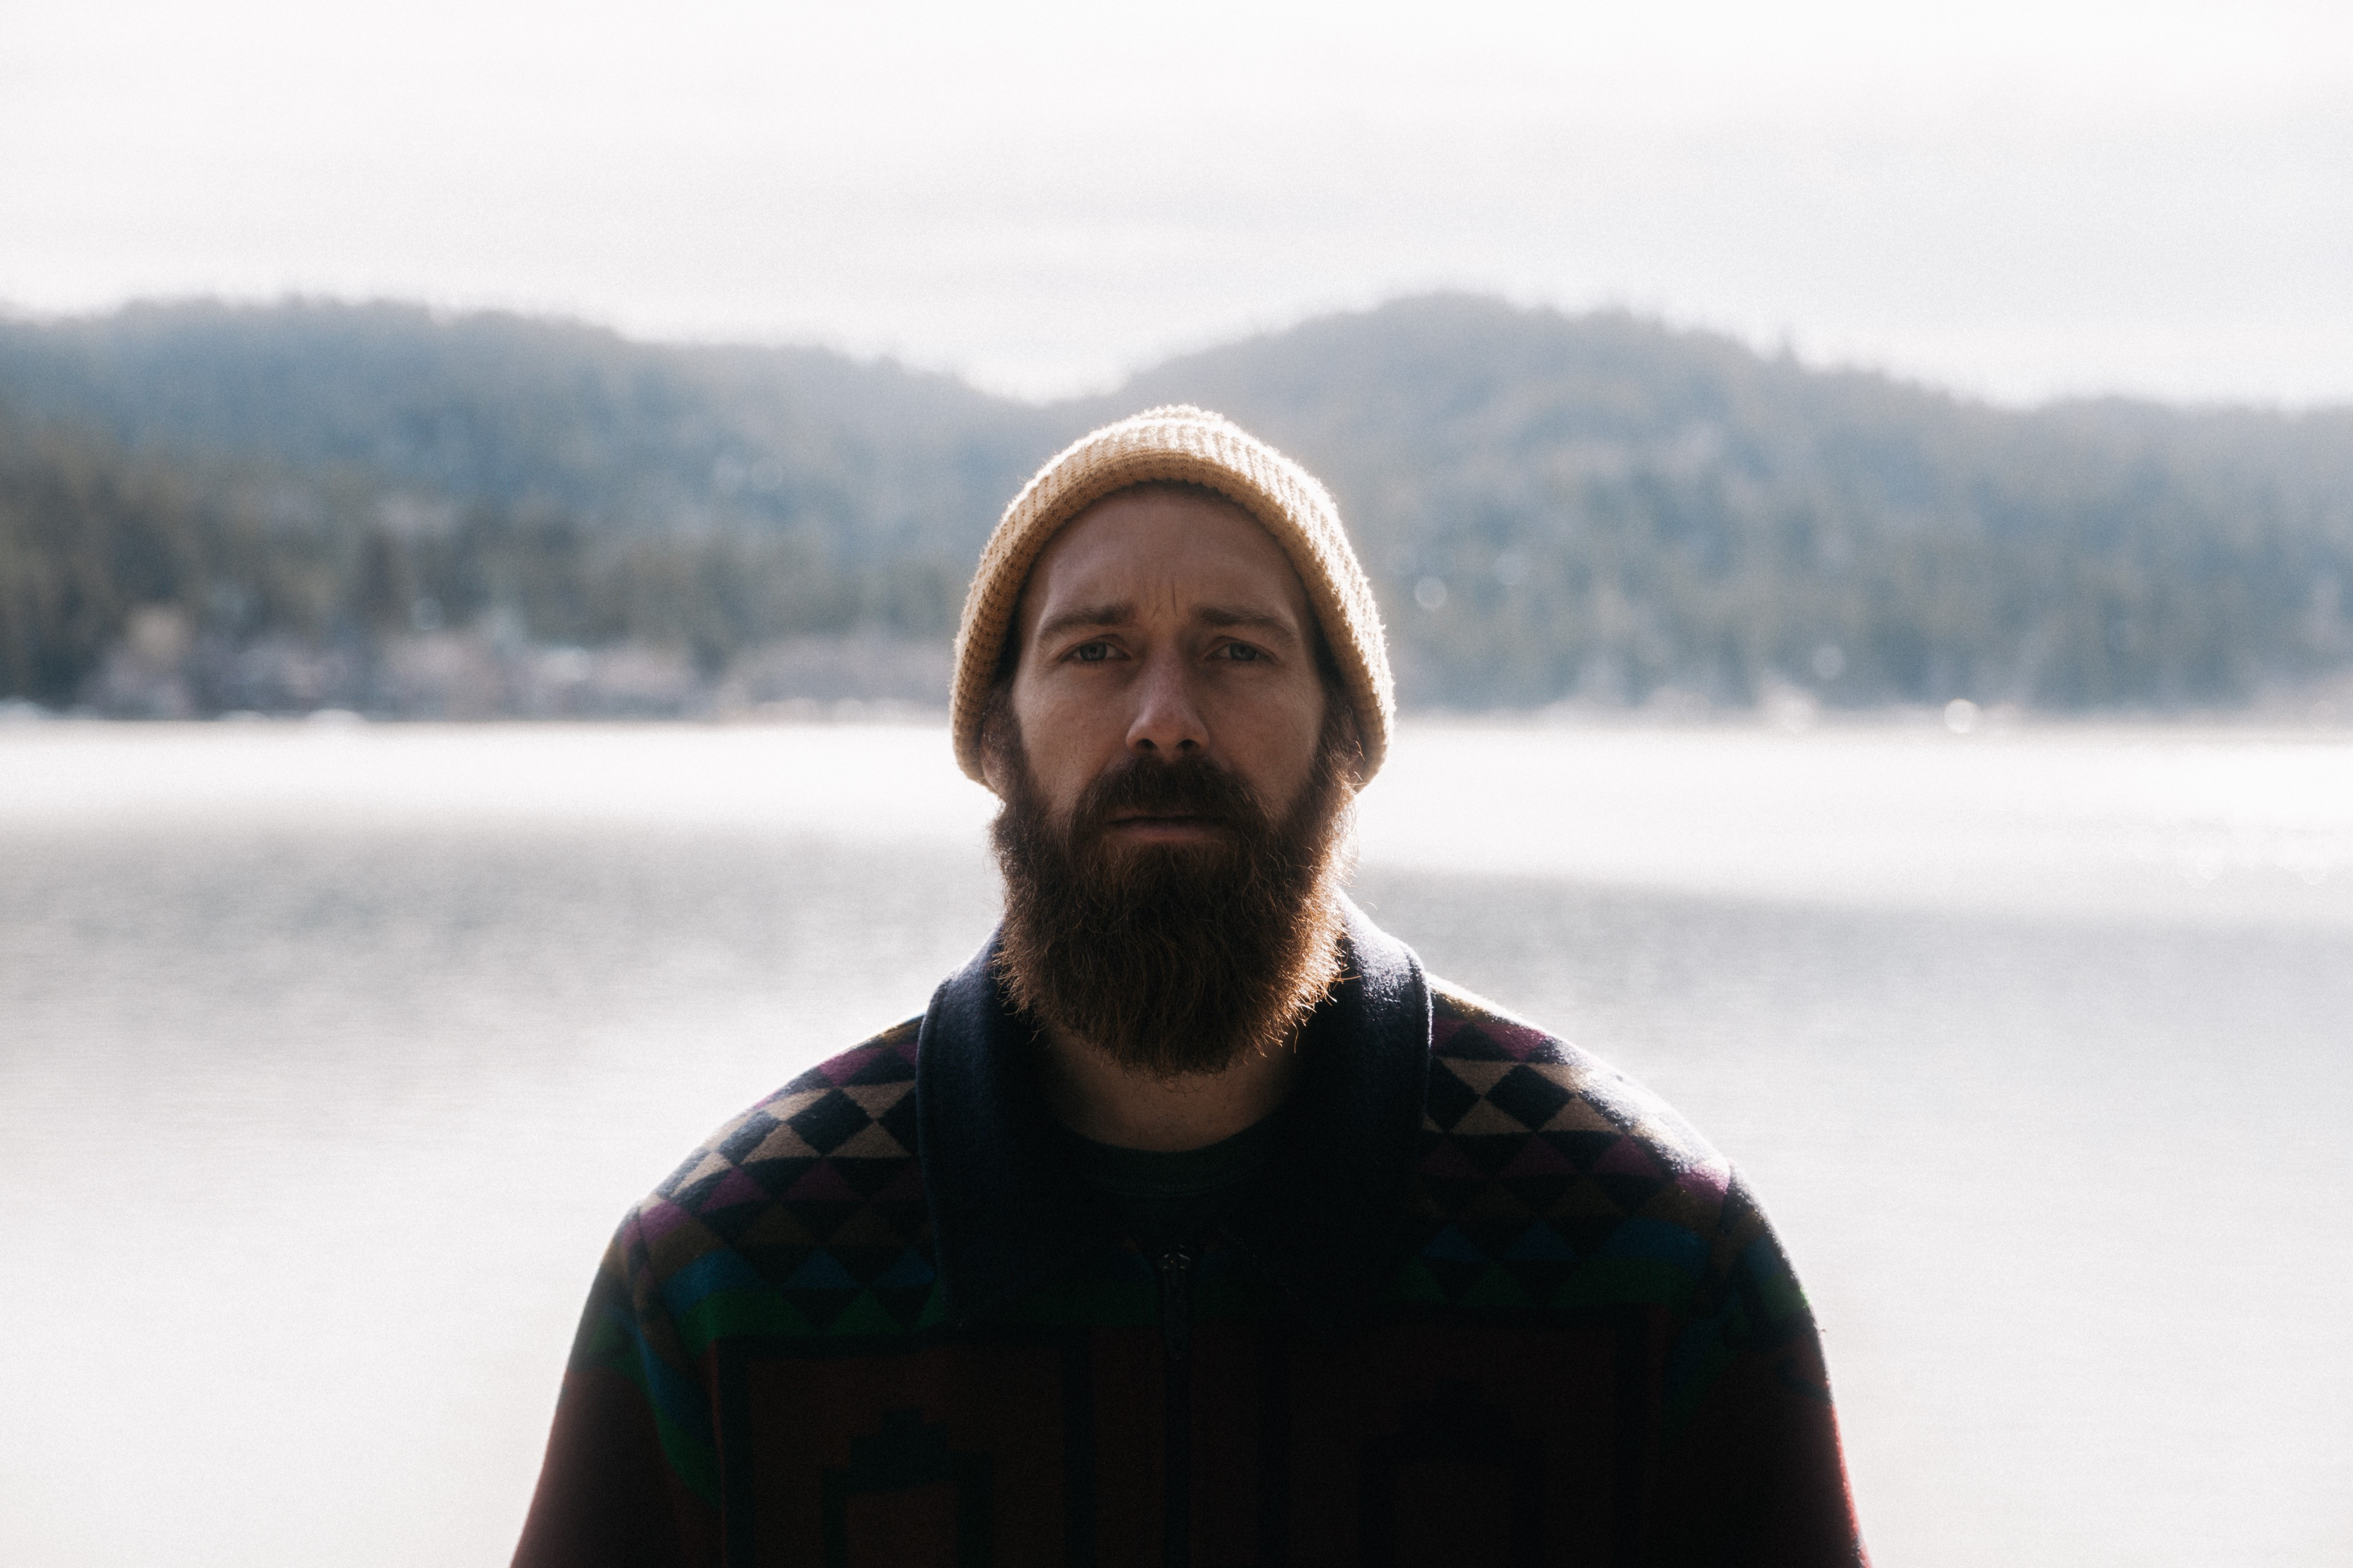 bearded guy with a beanie hat